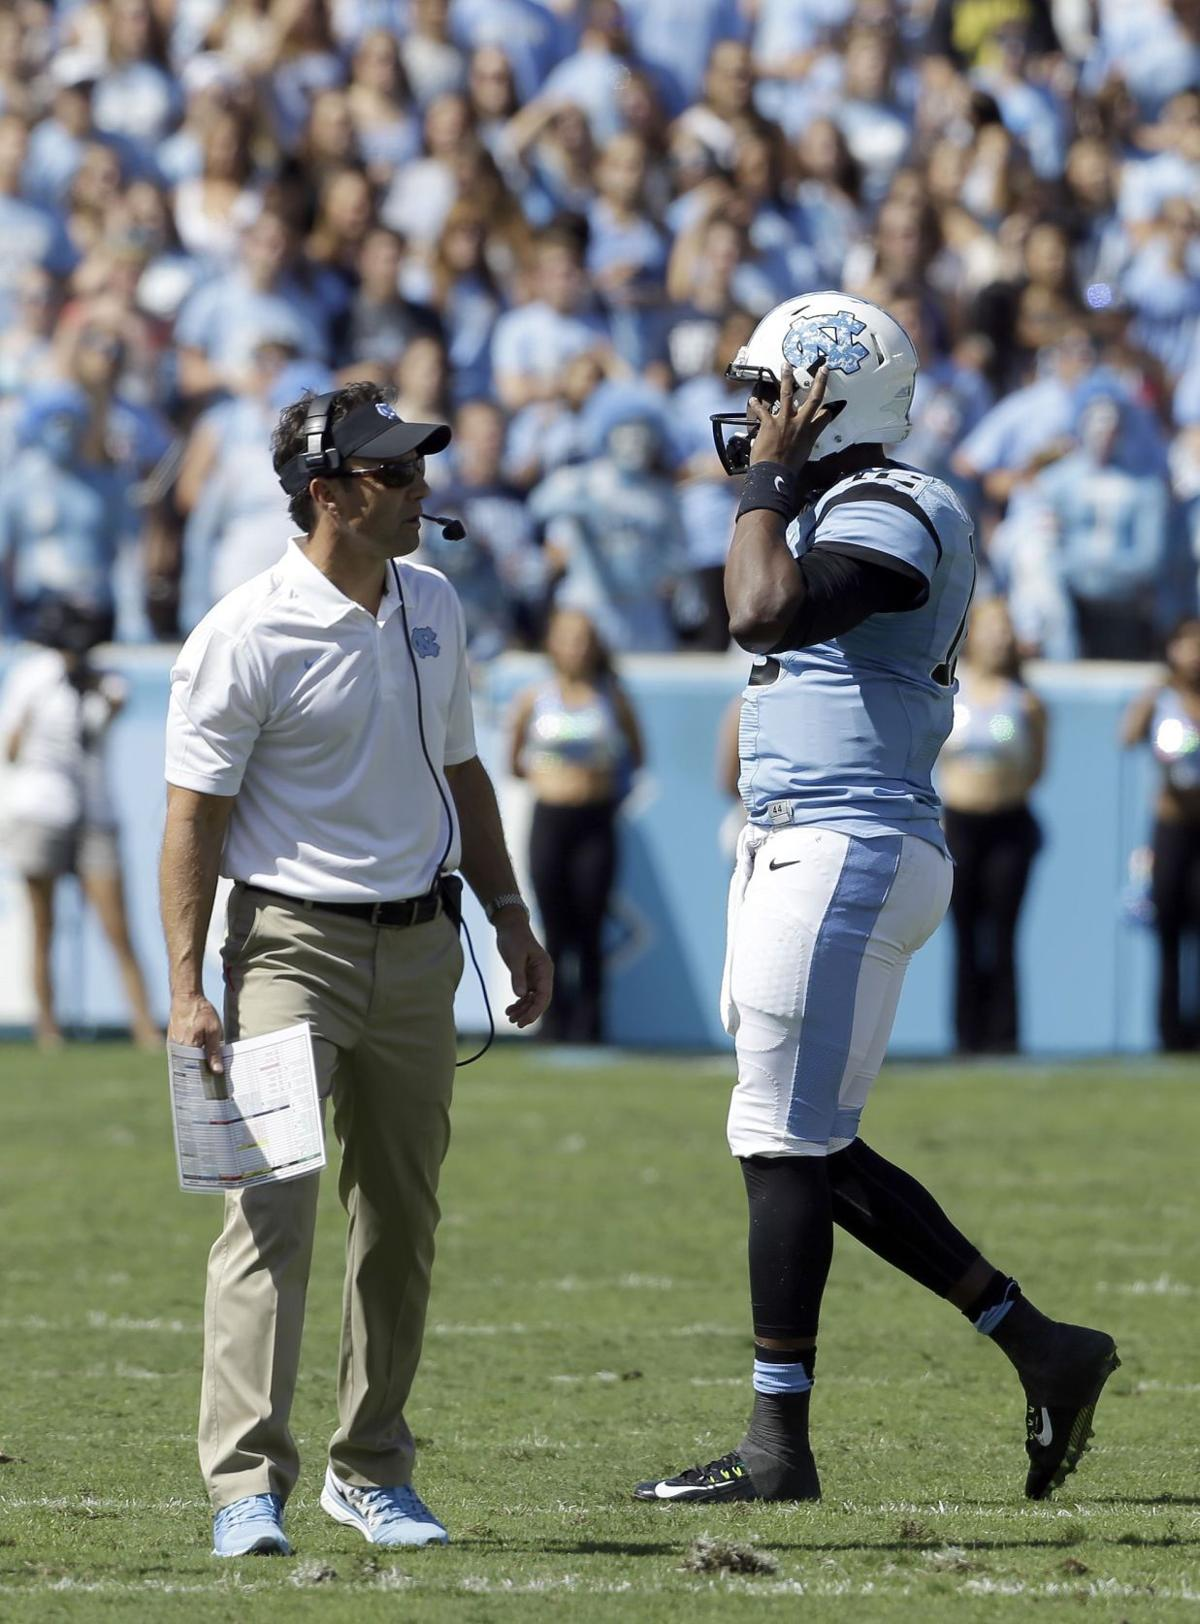 USC opponent preview: Tar Heels' QB Williams presents formidable opening-night foe